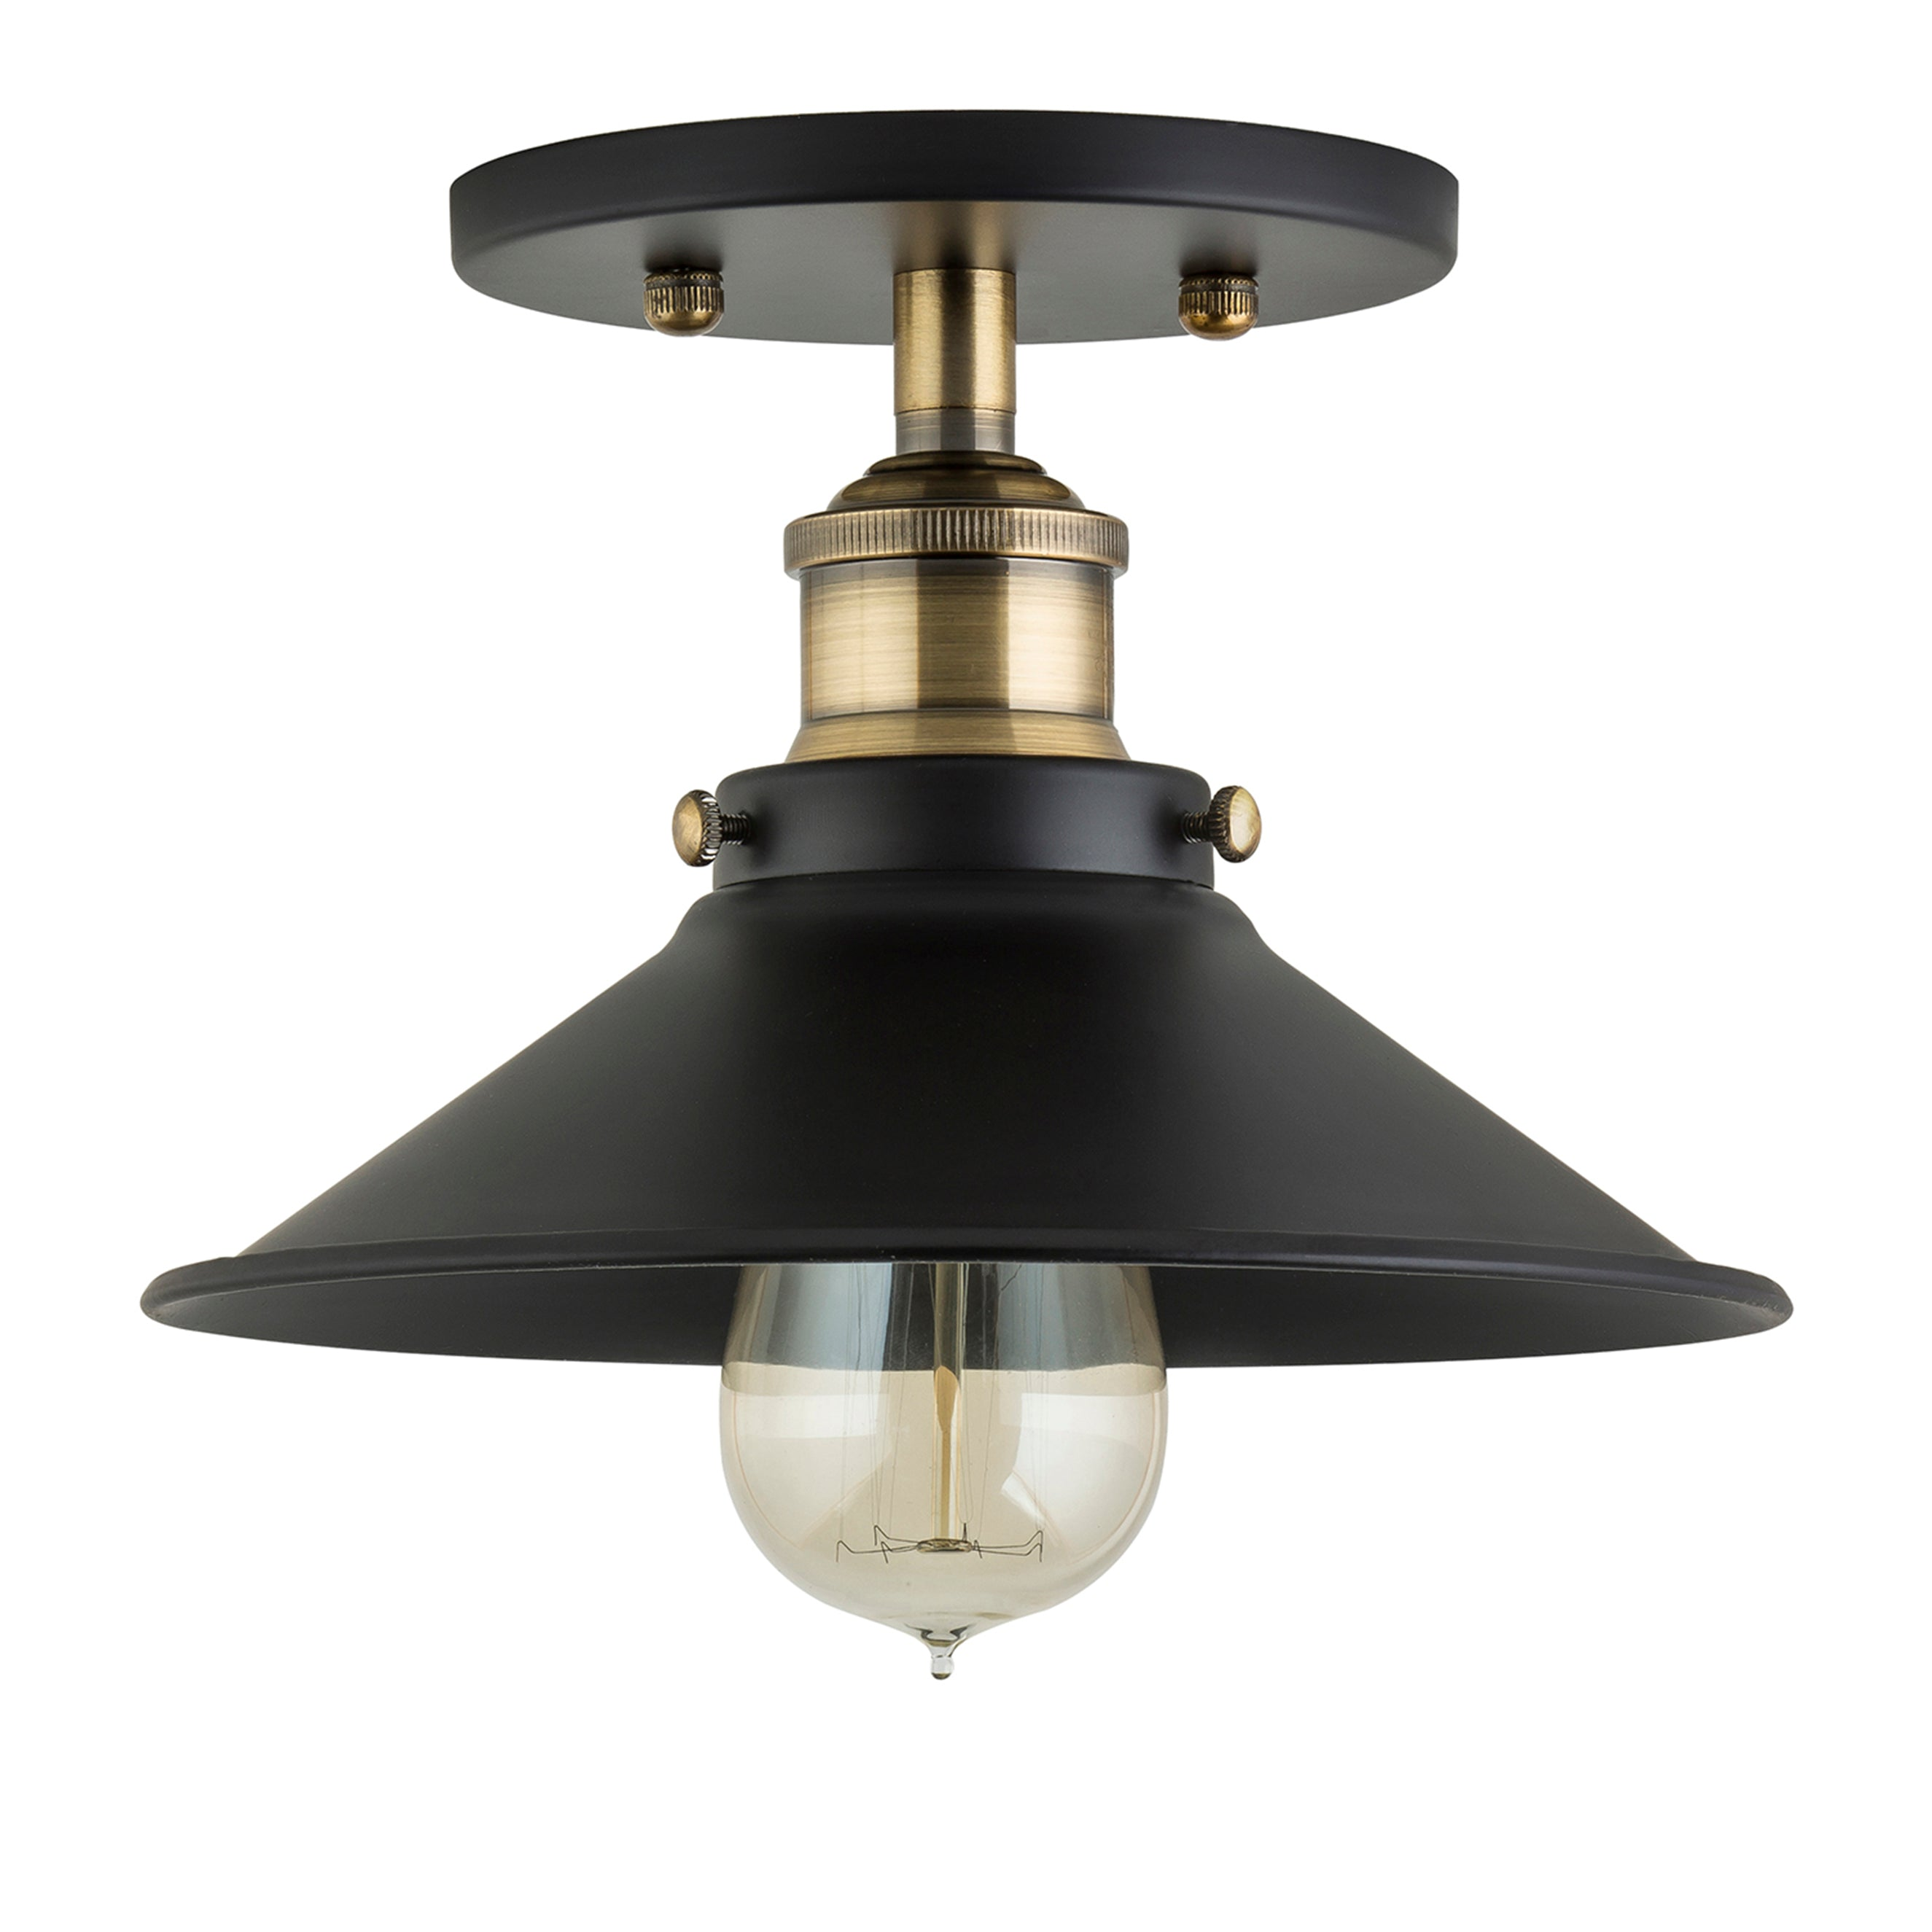 Andante Industrial Semi Flush Mount Ceiling Light, LED bulb included